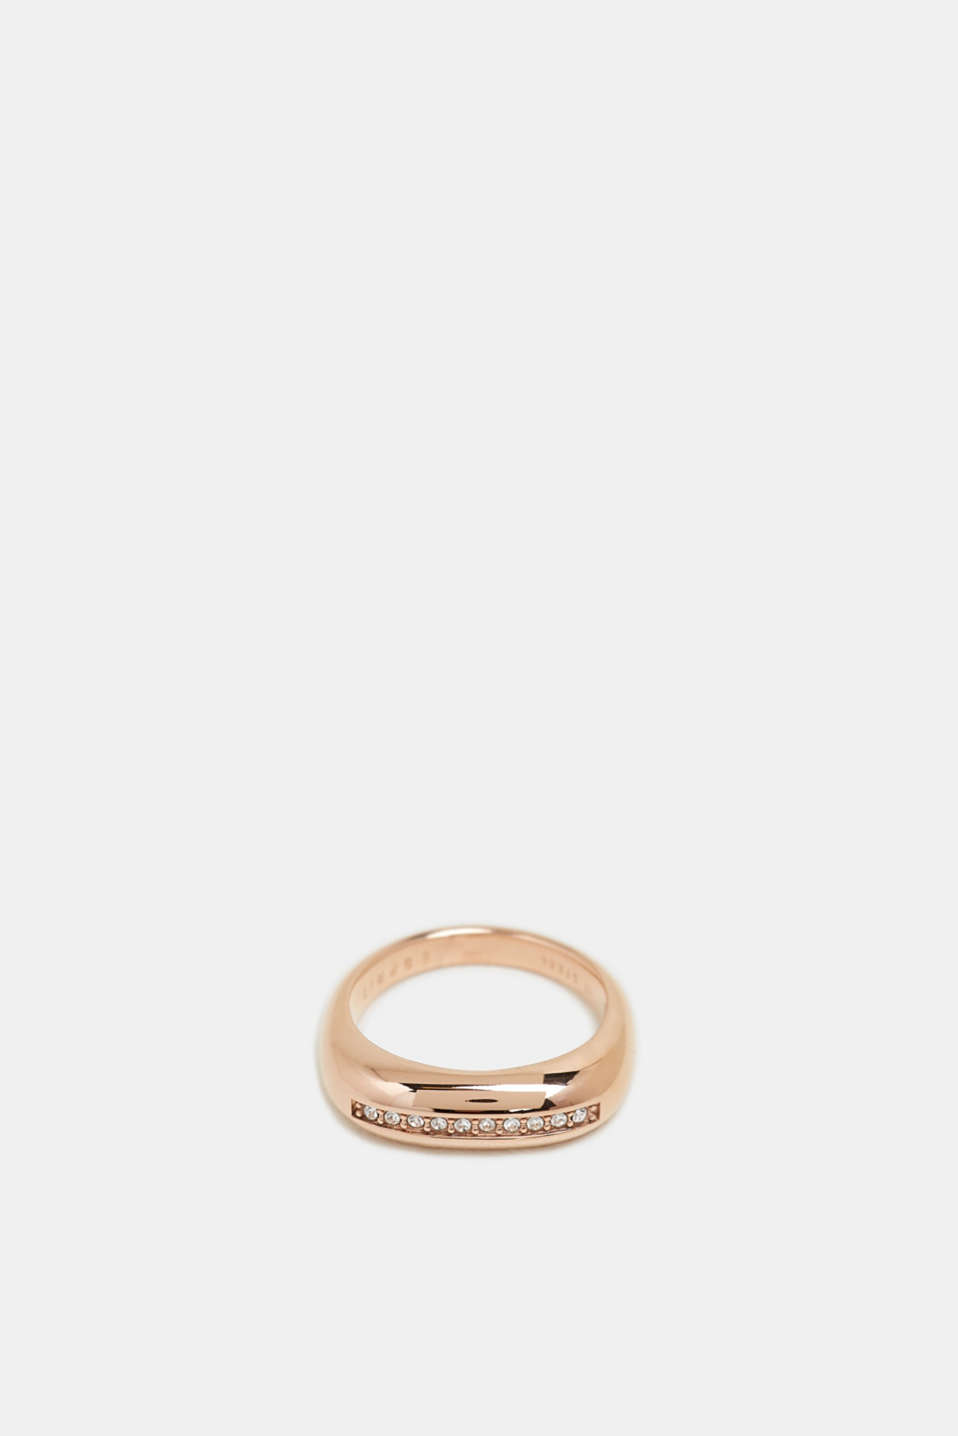 Rose gold ring with a row of zirconia, stainless steel, ROSEGOLD, detail image number 1